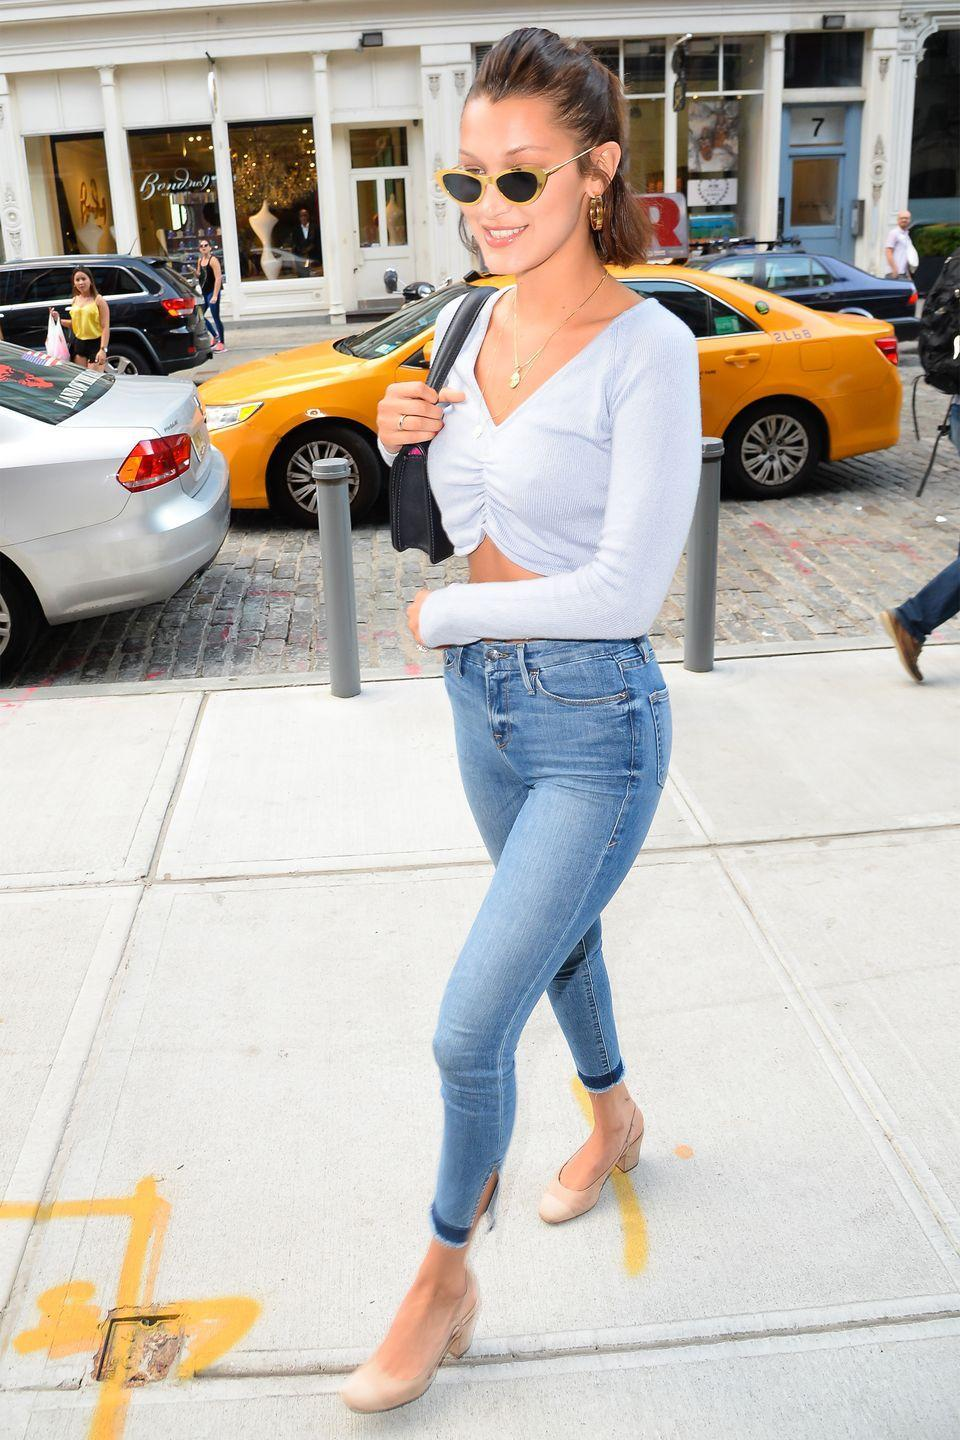 <p>In Good American jeans, a crop top, retro shades and carrying a Dior bag in NYC. </p>